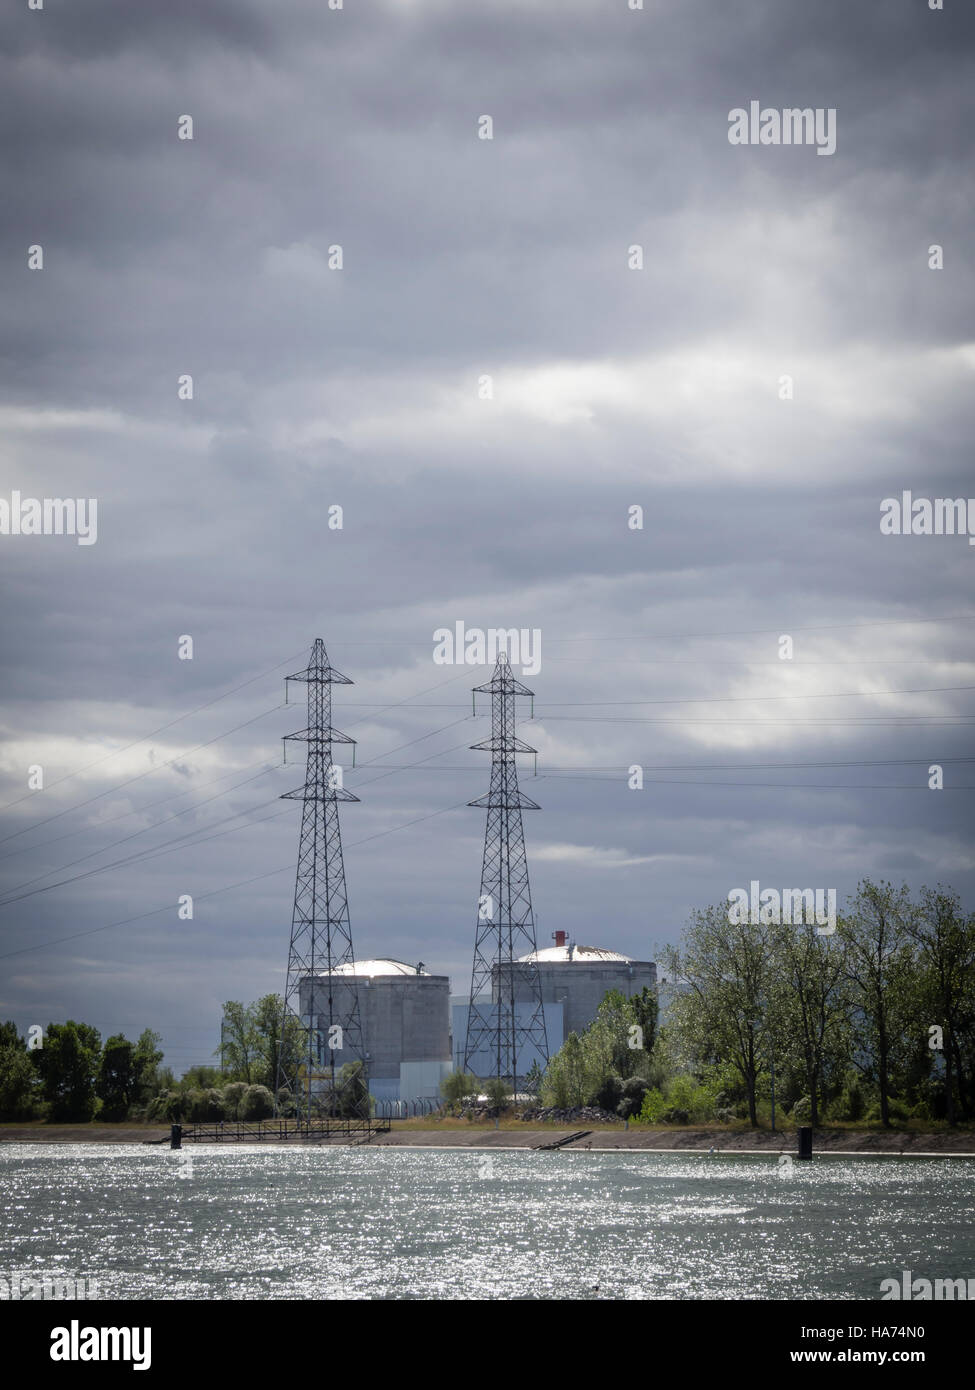 Reactor blocks of the nuclear power plant Fessenheim, France, at the river of Rhine. - Stock Image